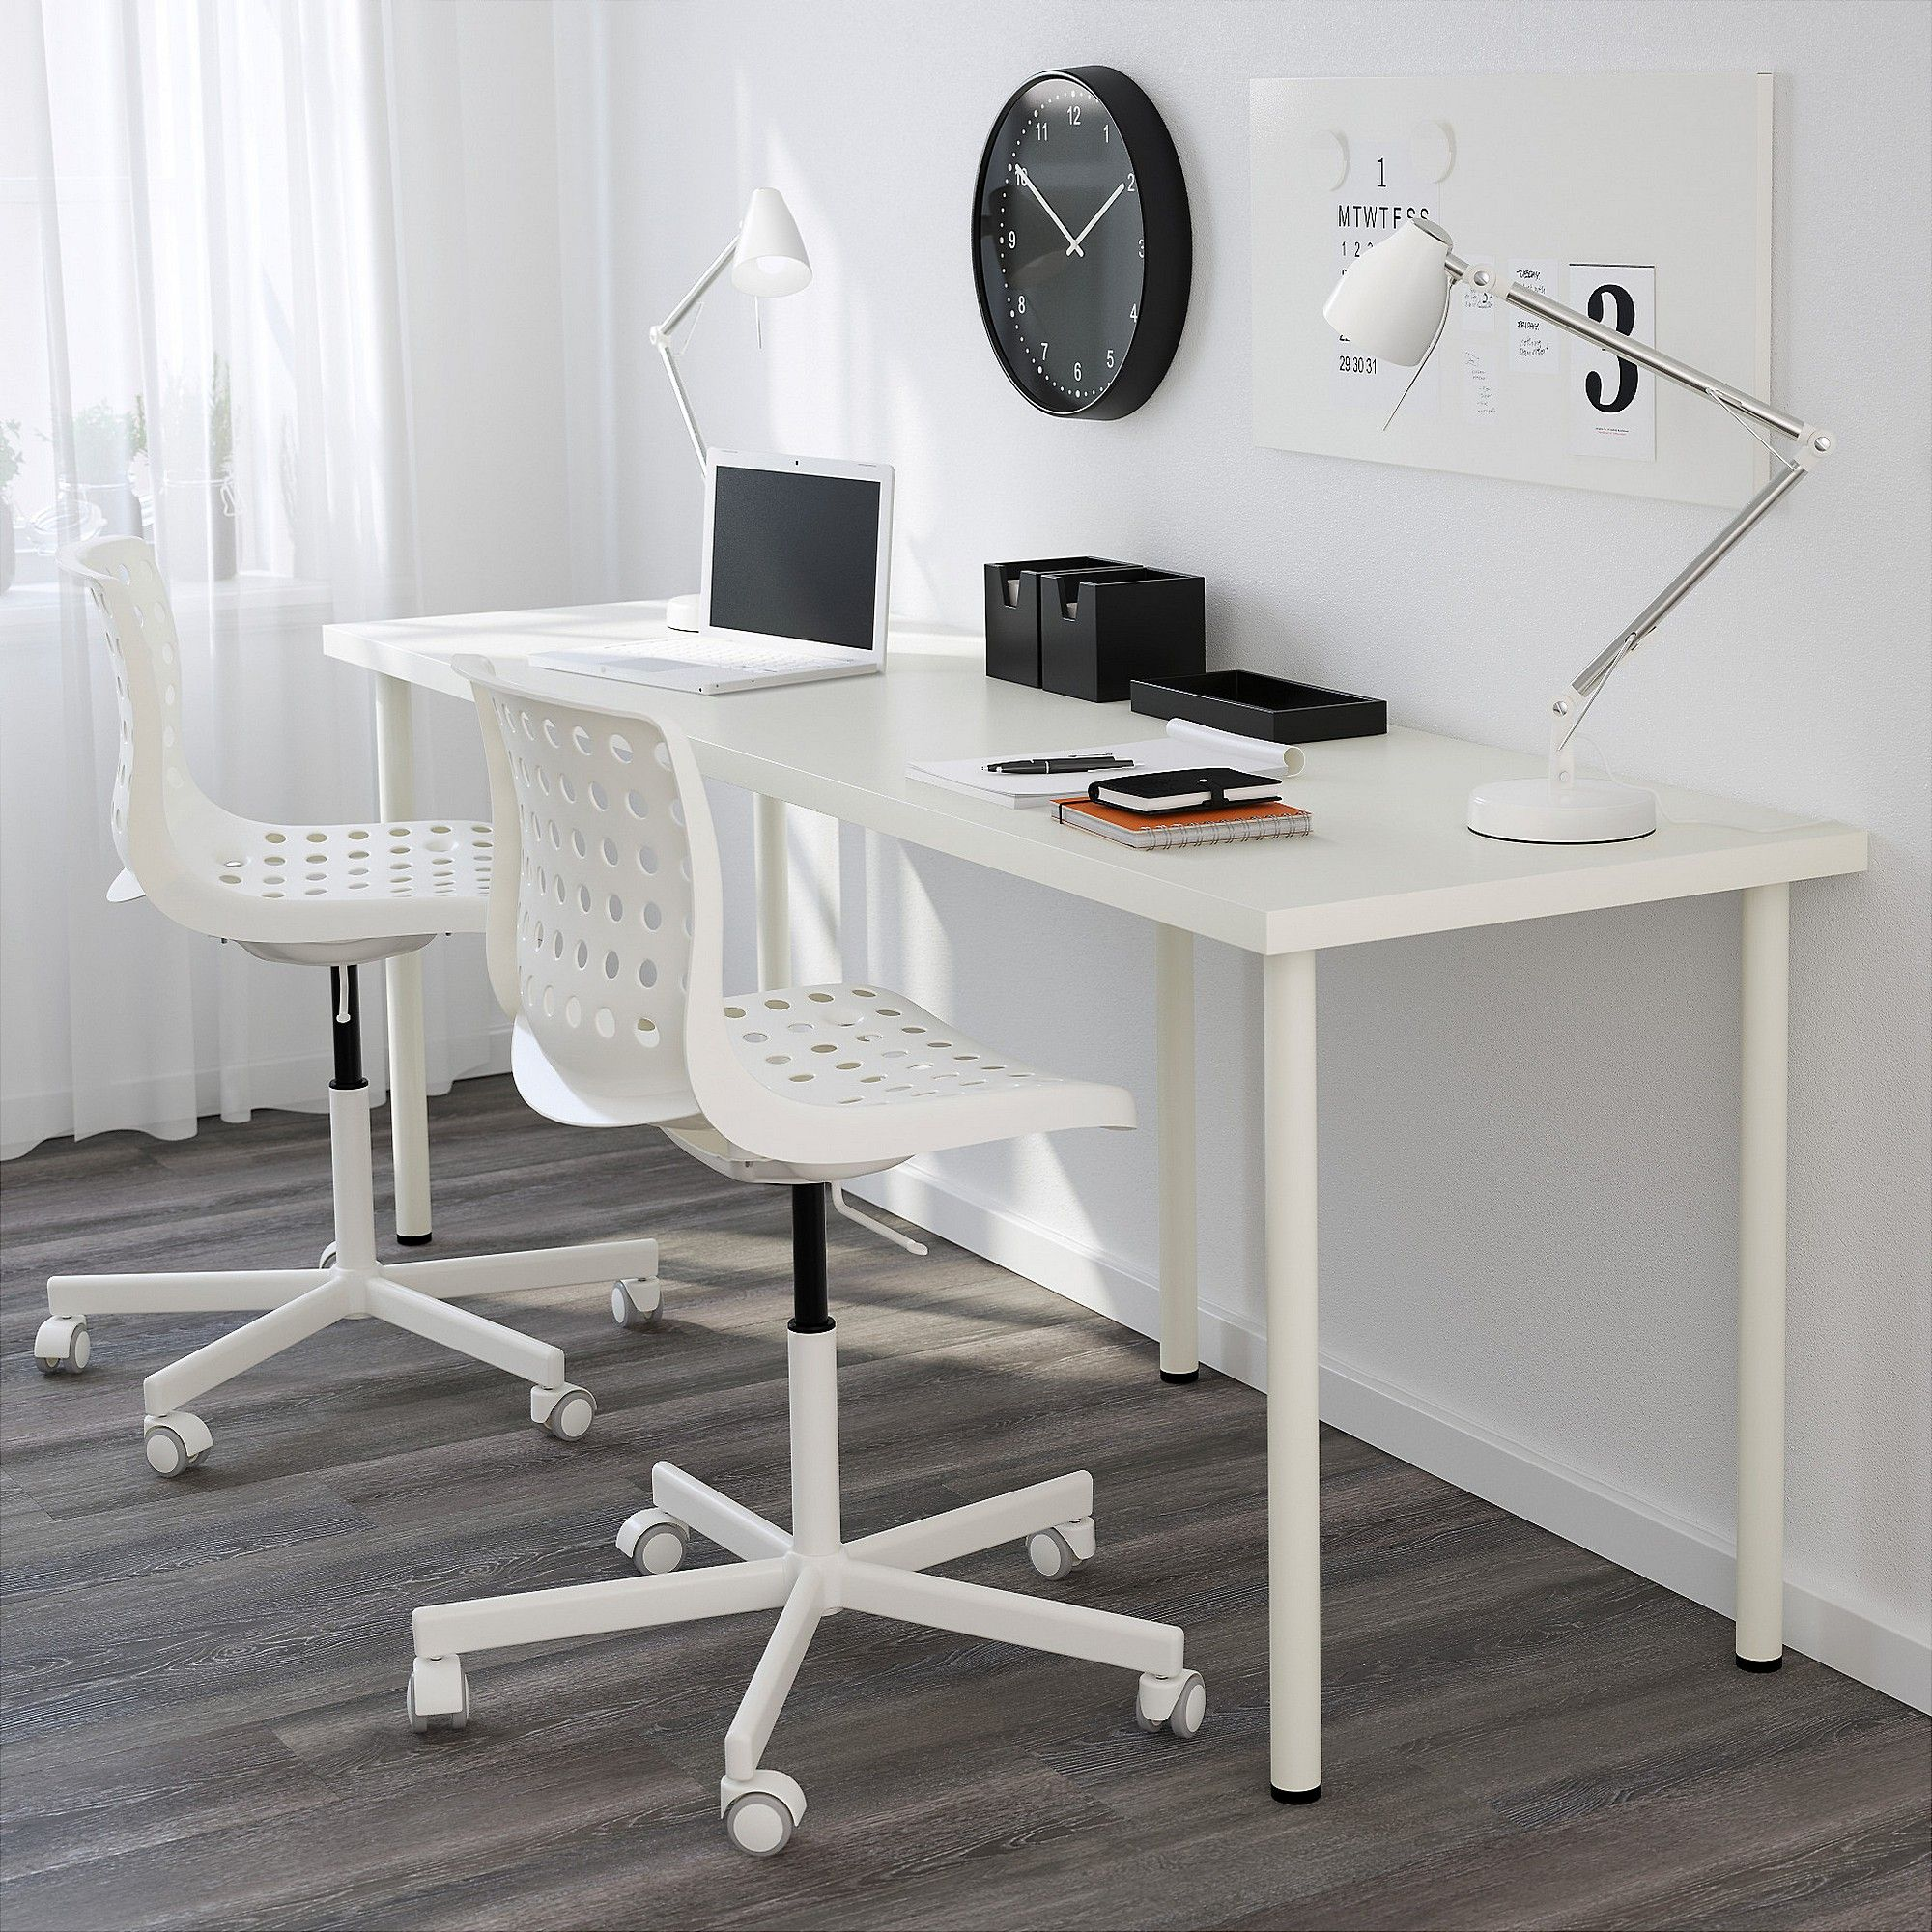 High Quality Clean White IKEA LINNMON ADILS Desk Setup With Laptop On It Great Ideas